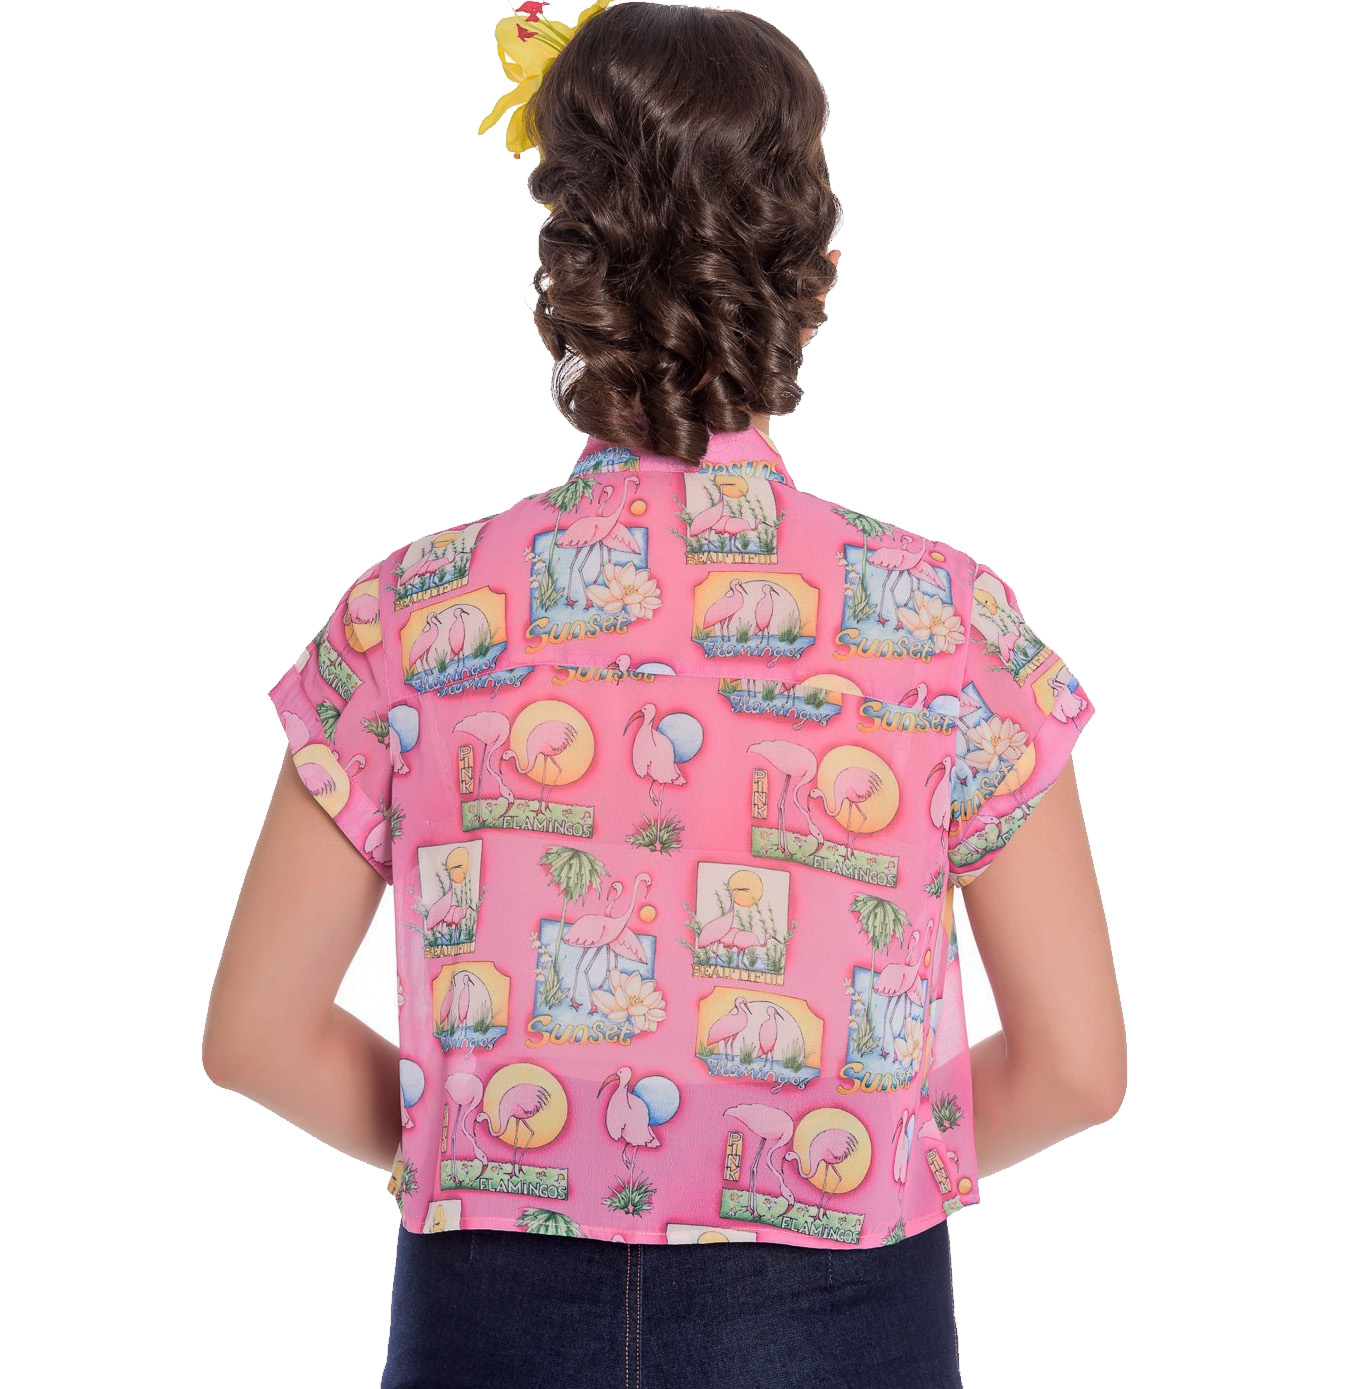 Hell-Bunny-50s-Retro-Top-Pink-Flamingo-MAXINE-Cropped-Blouse-Shirt-All-Sizes thumbnail 21